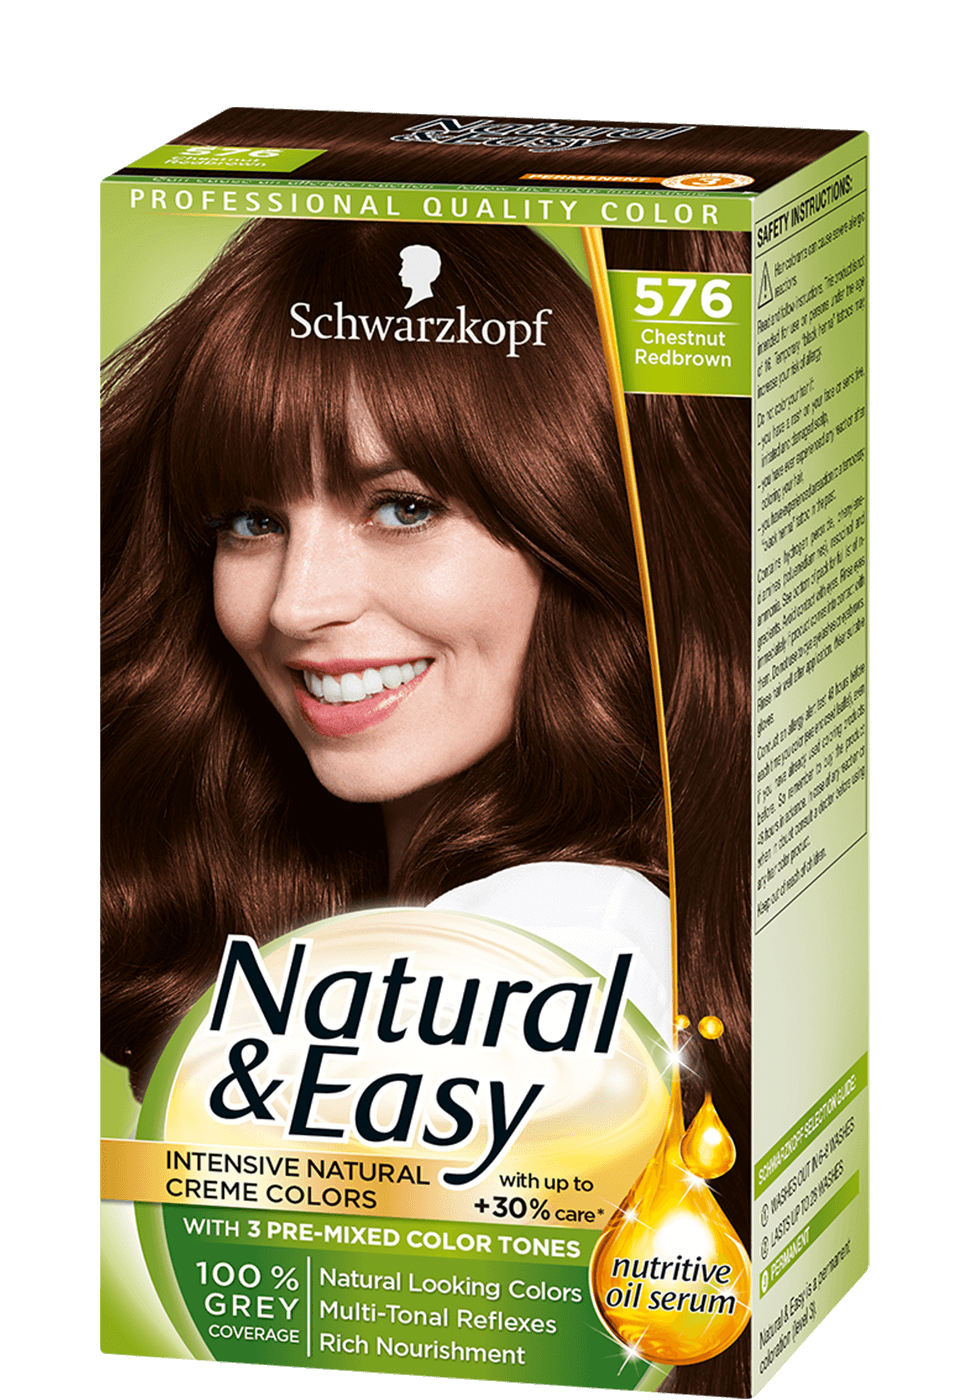 natural_easy_com_brown_hair_576_chestnut_redbrown_970x1400